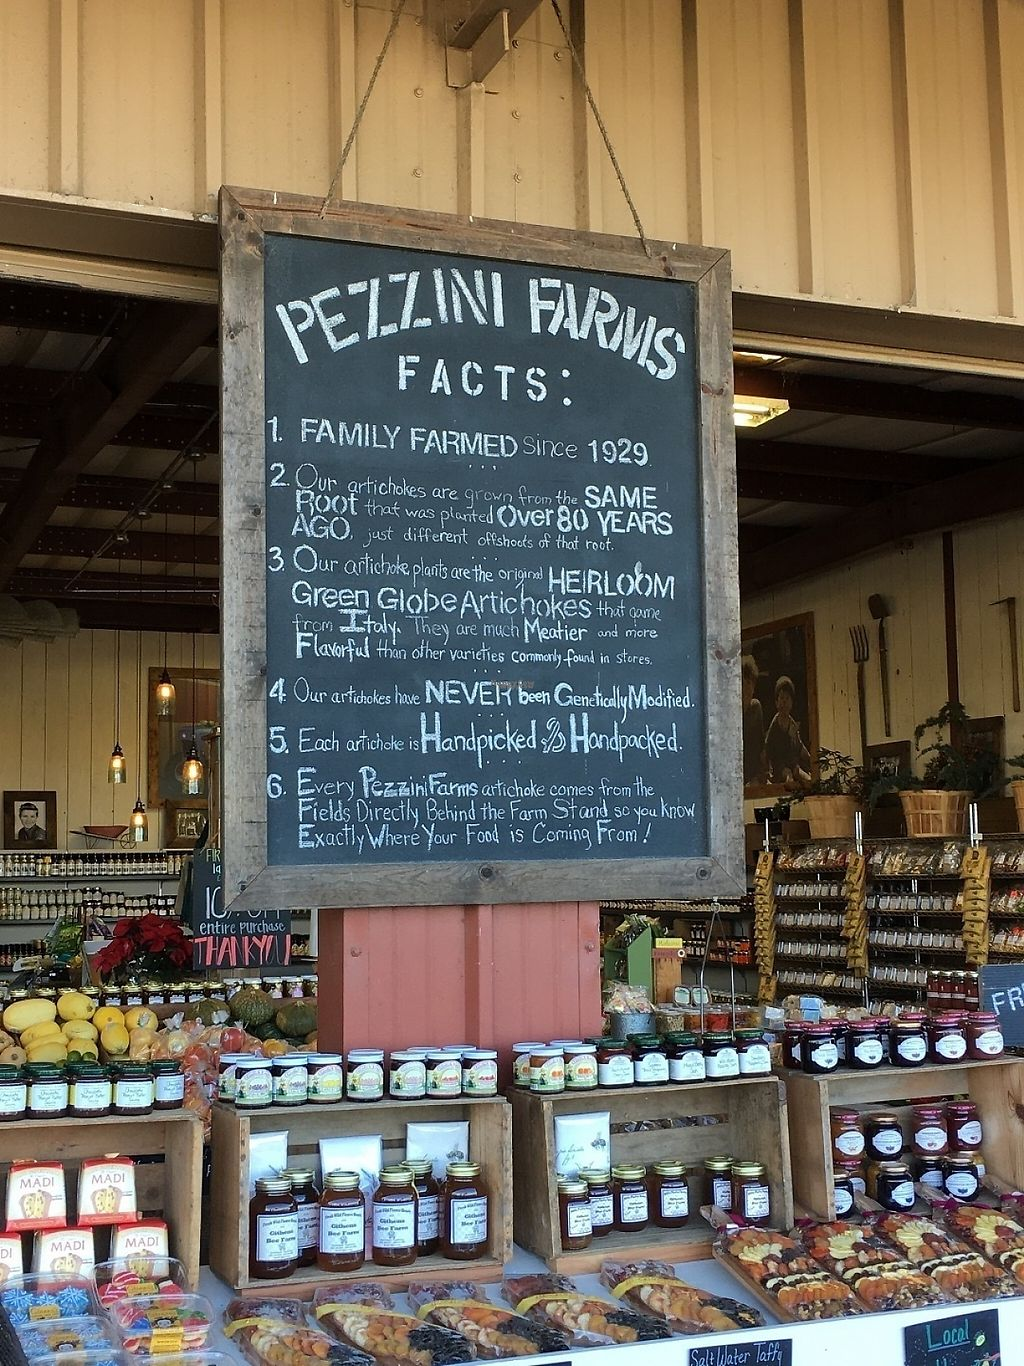 "Photo of Pezzini Farms  by <a href=""/members/profile/KWdaddio"">KWdaddio</a> <br/>Pezzini Farms shop entrance <br/> December 28, 2016  - <a href='/contact/abuse/image/46202/205802'>Report</a>"